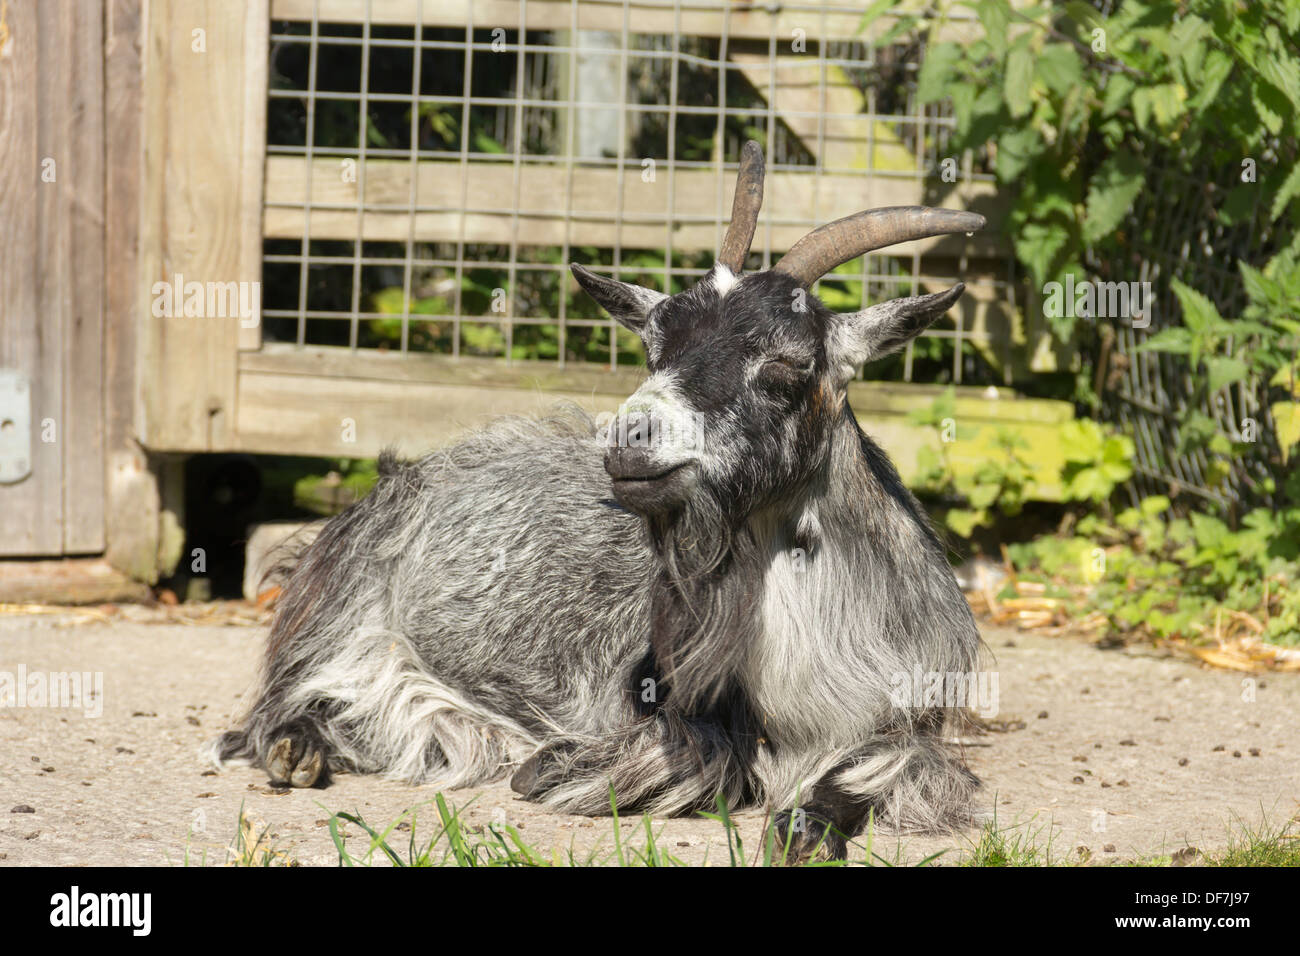 A pygmy (pigmy) goat at the Animal World attraction at Moss Bank Park, Bolton, on its final weekend of operation before closing. - Stock Image